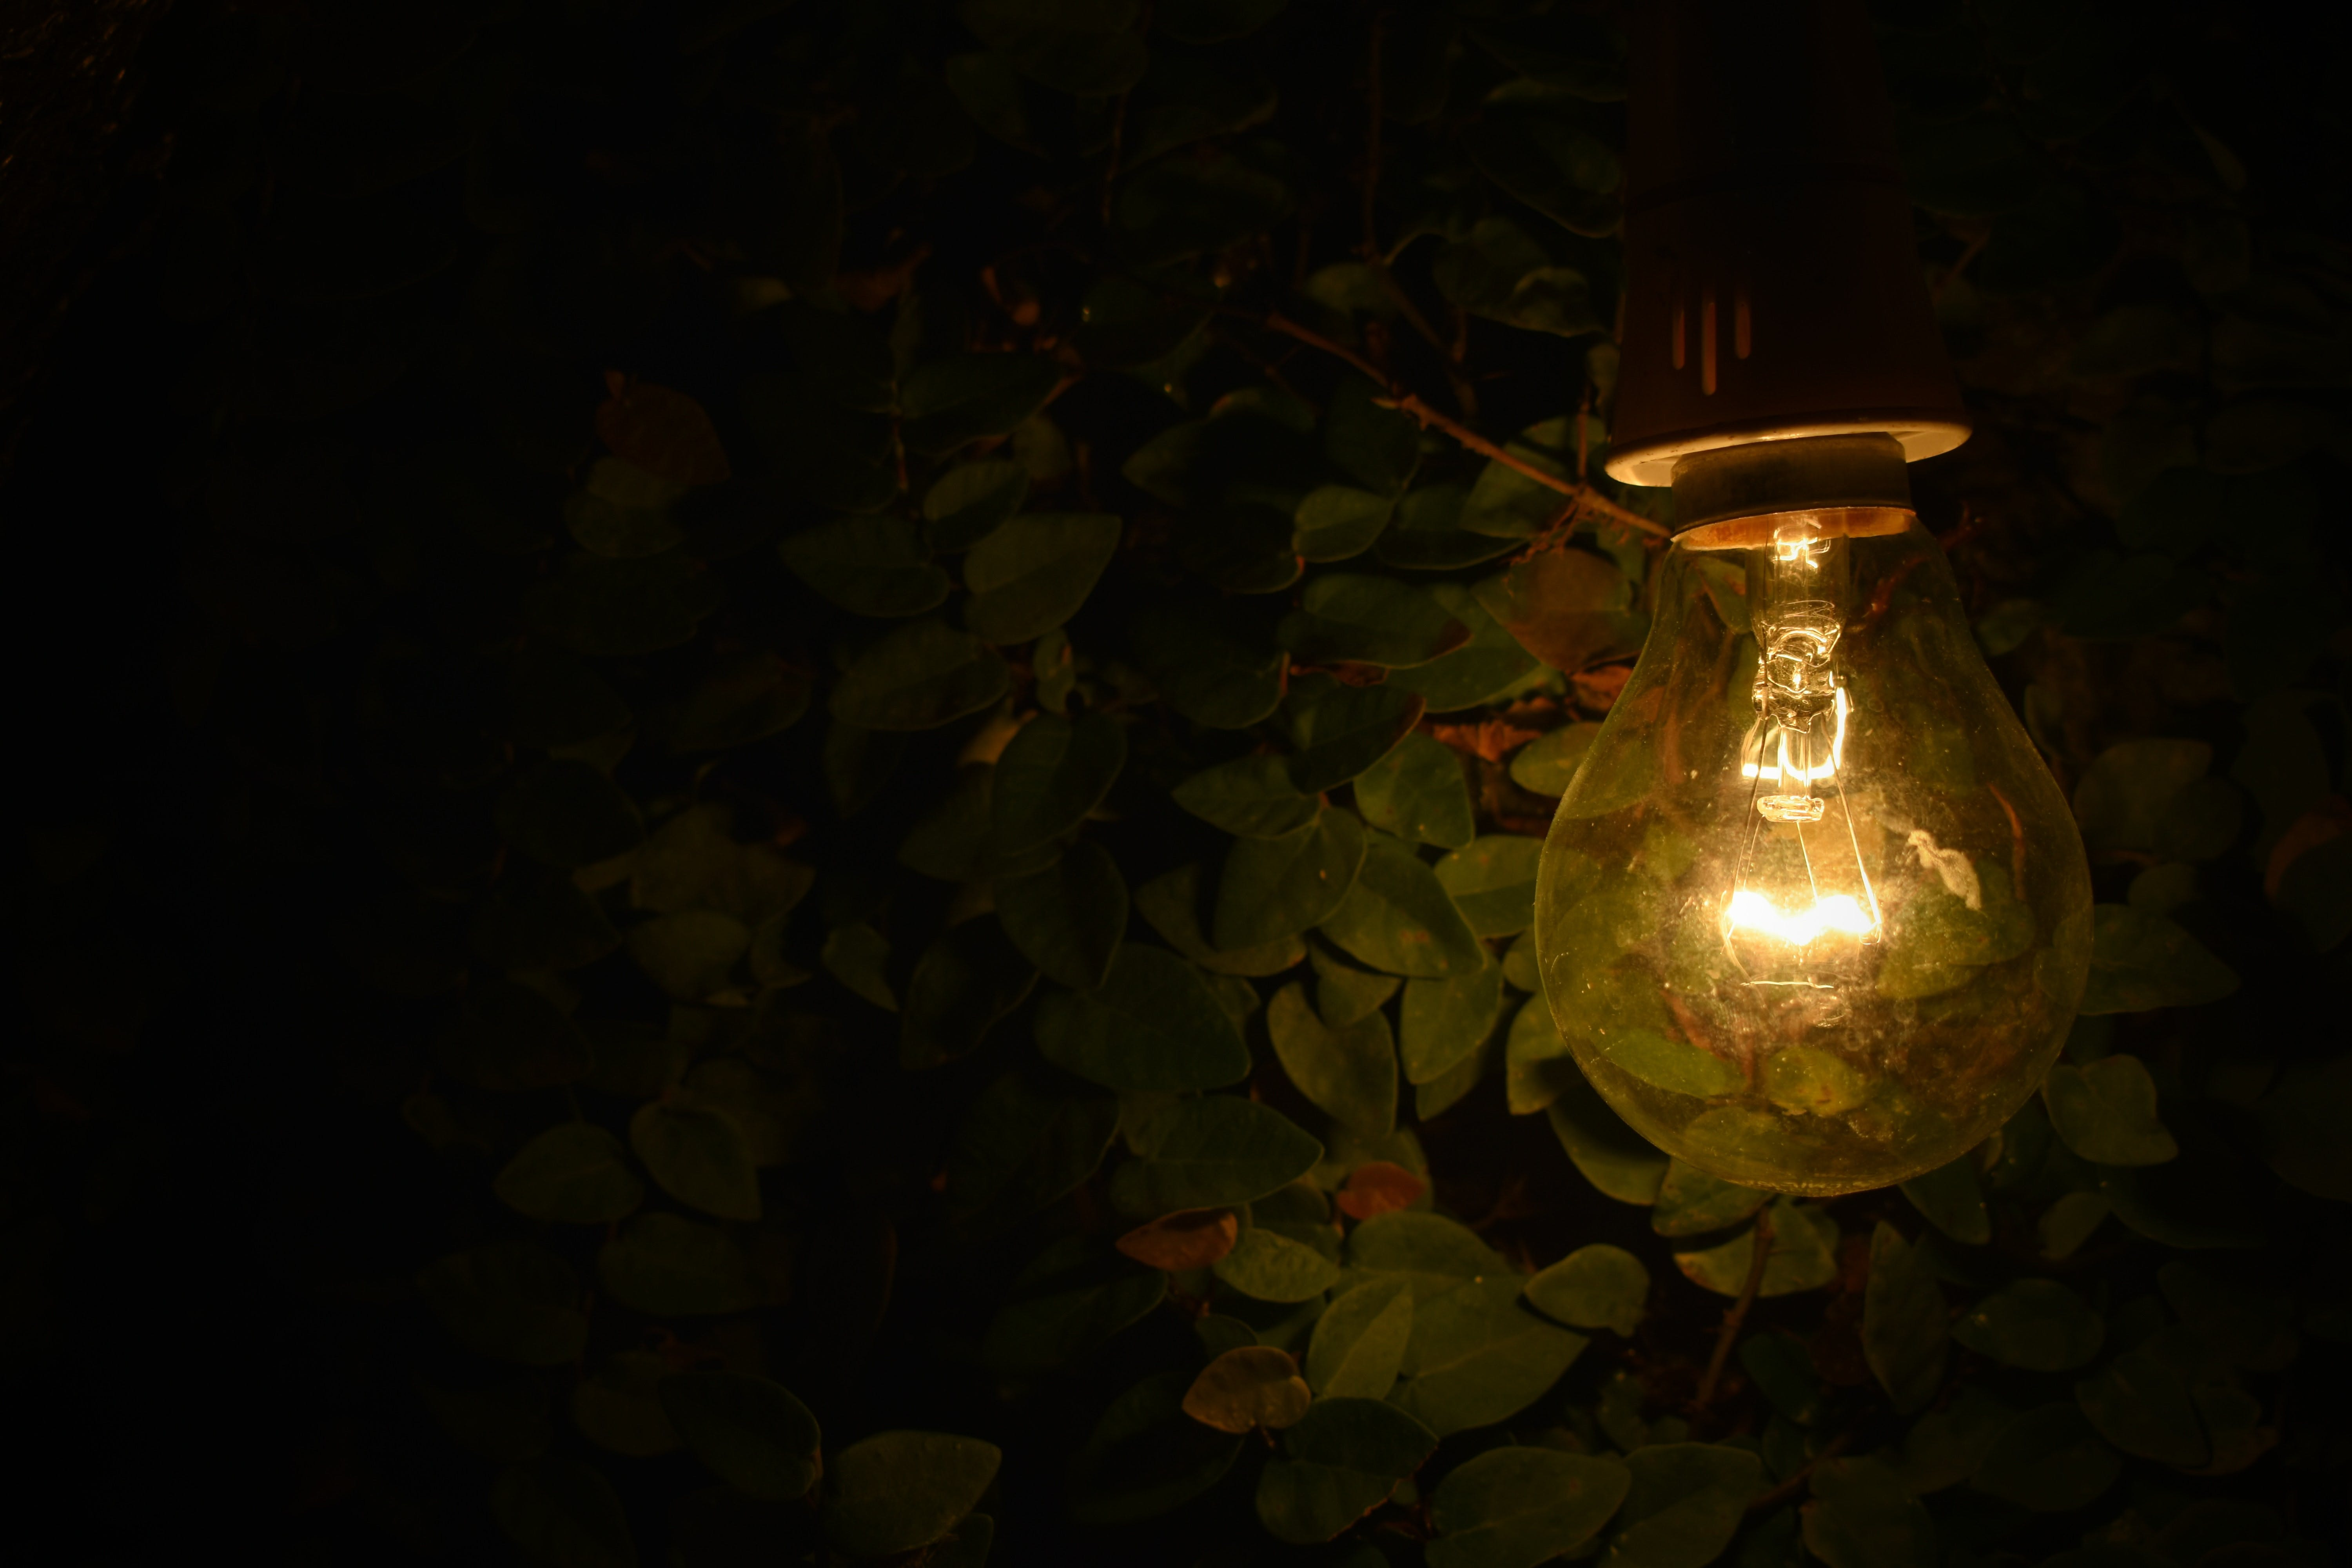 Turned-on Lamp Near Green Plants